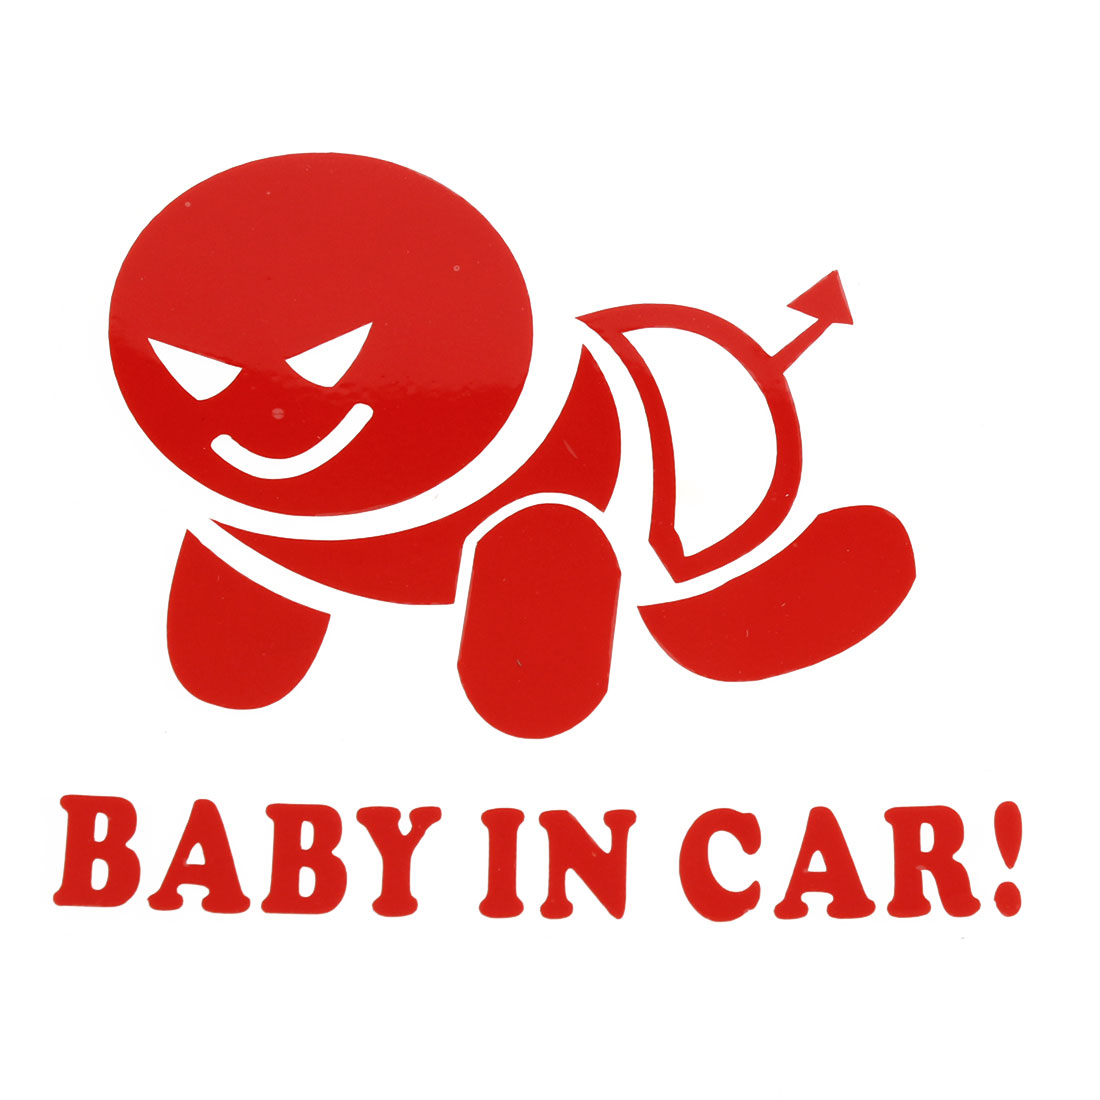 Baby in Car Printed Safety Sign Self Adhesive Decal Sticker Red for Car